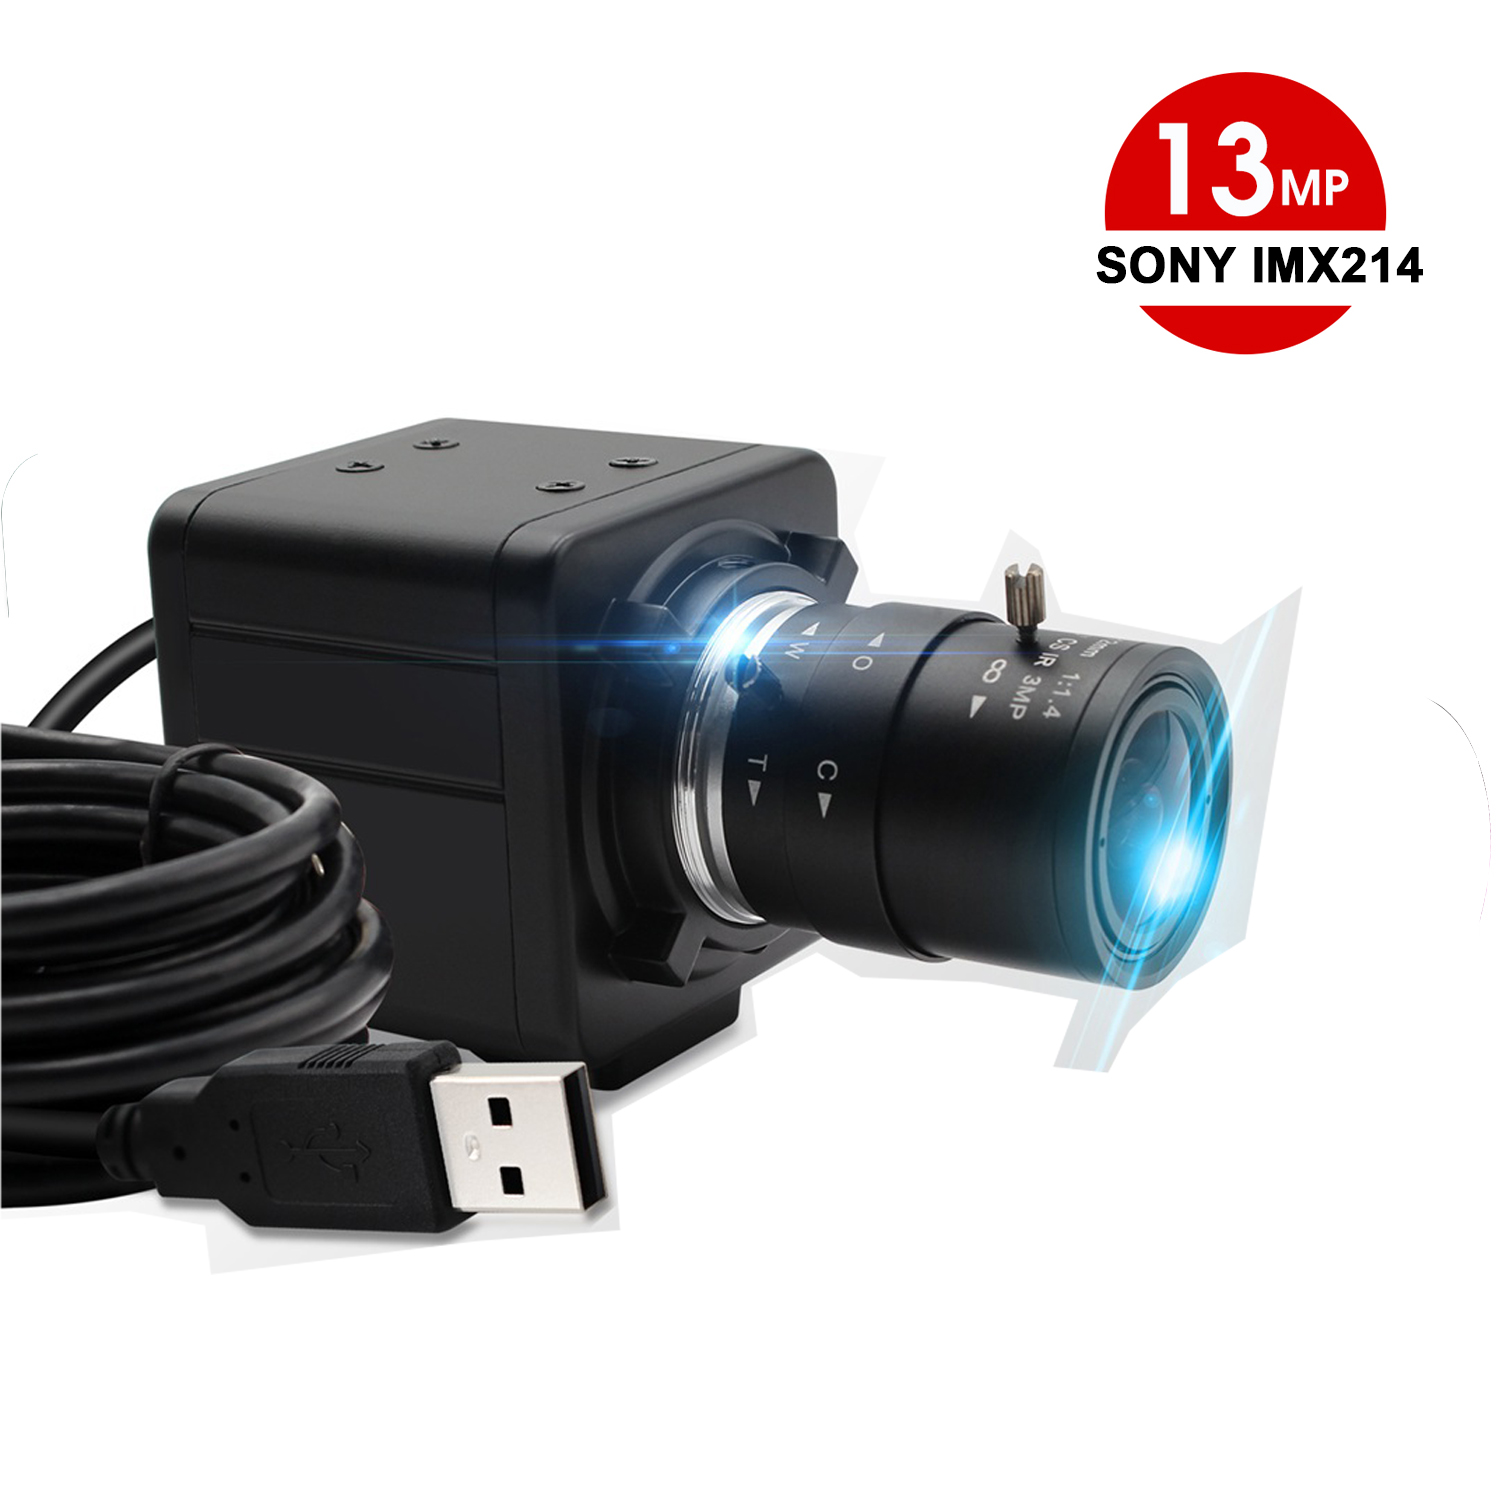 ELP Sony IMX214 Sensor 3840*2880 13MP Zoom Manual Focus Mini USB Camera with 2.8-12mm Varifocal lens